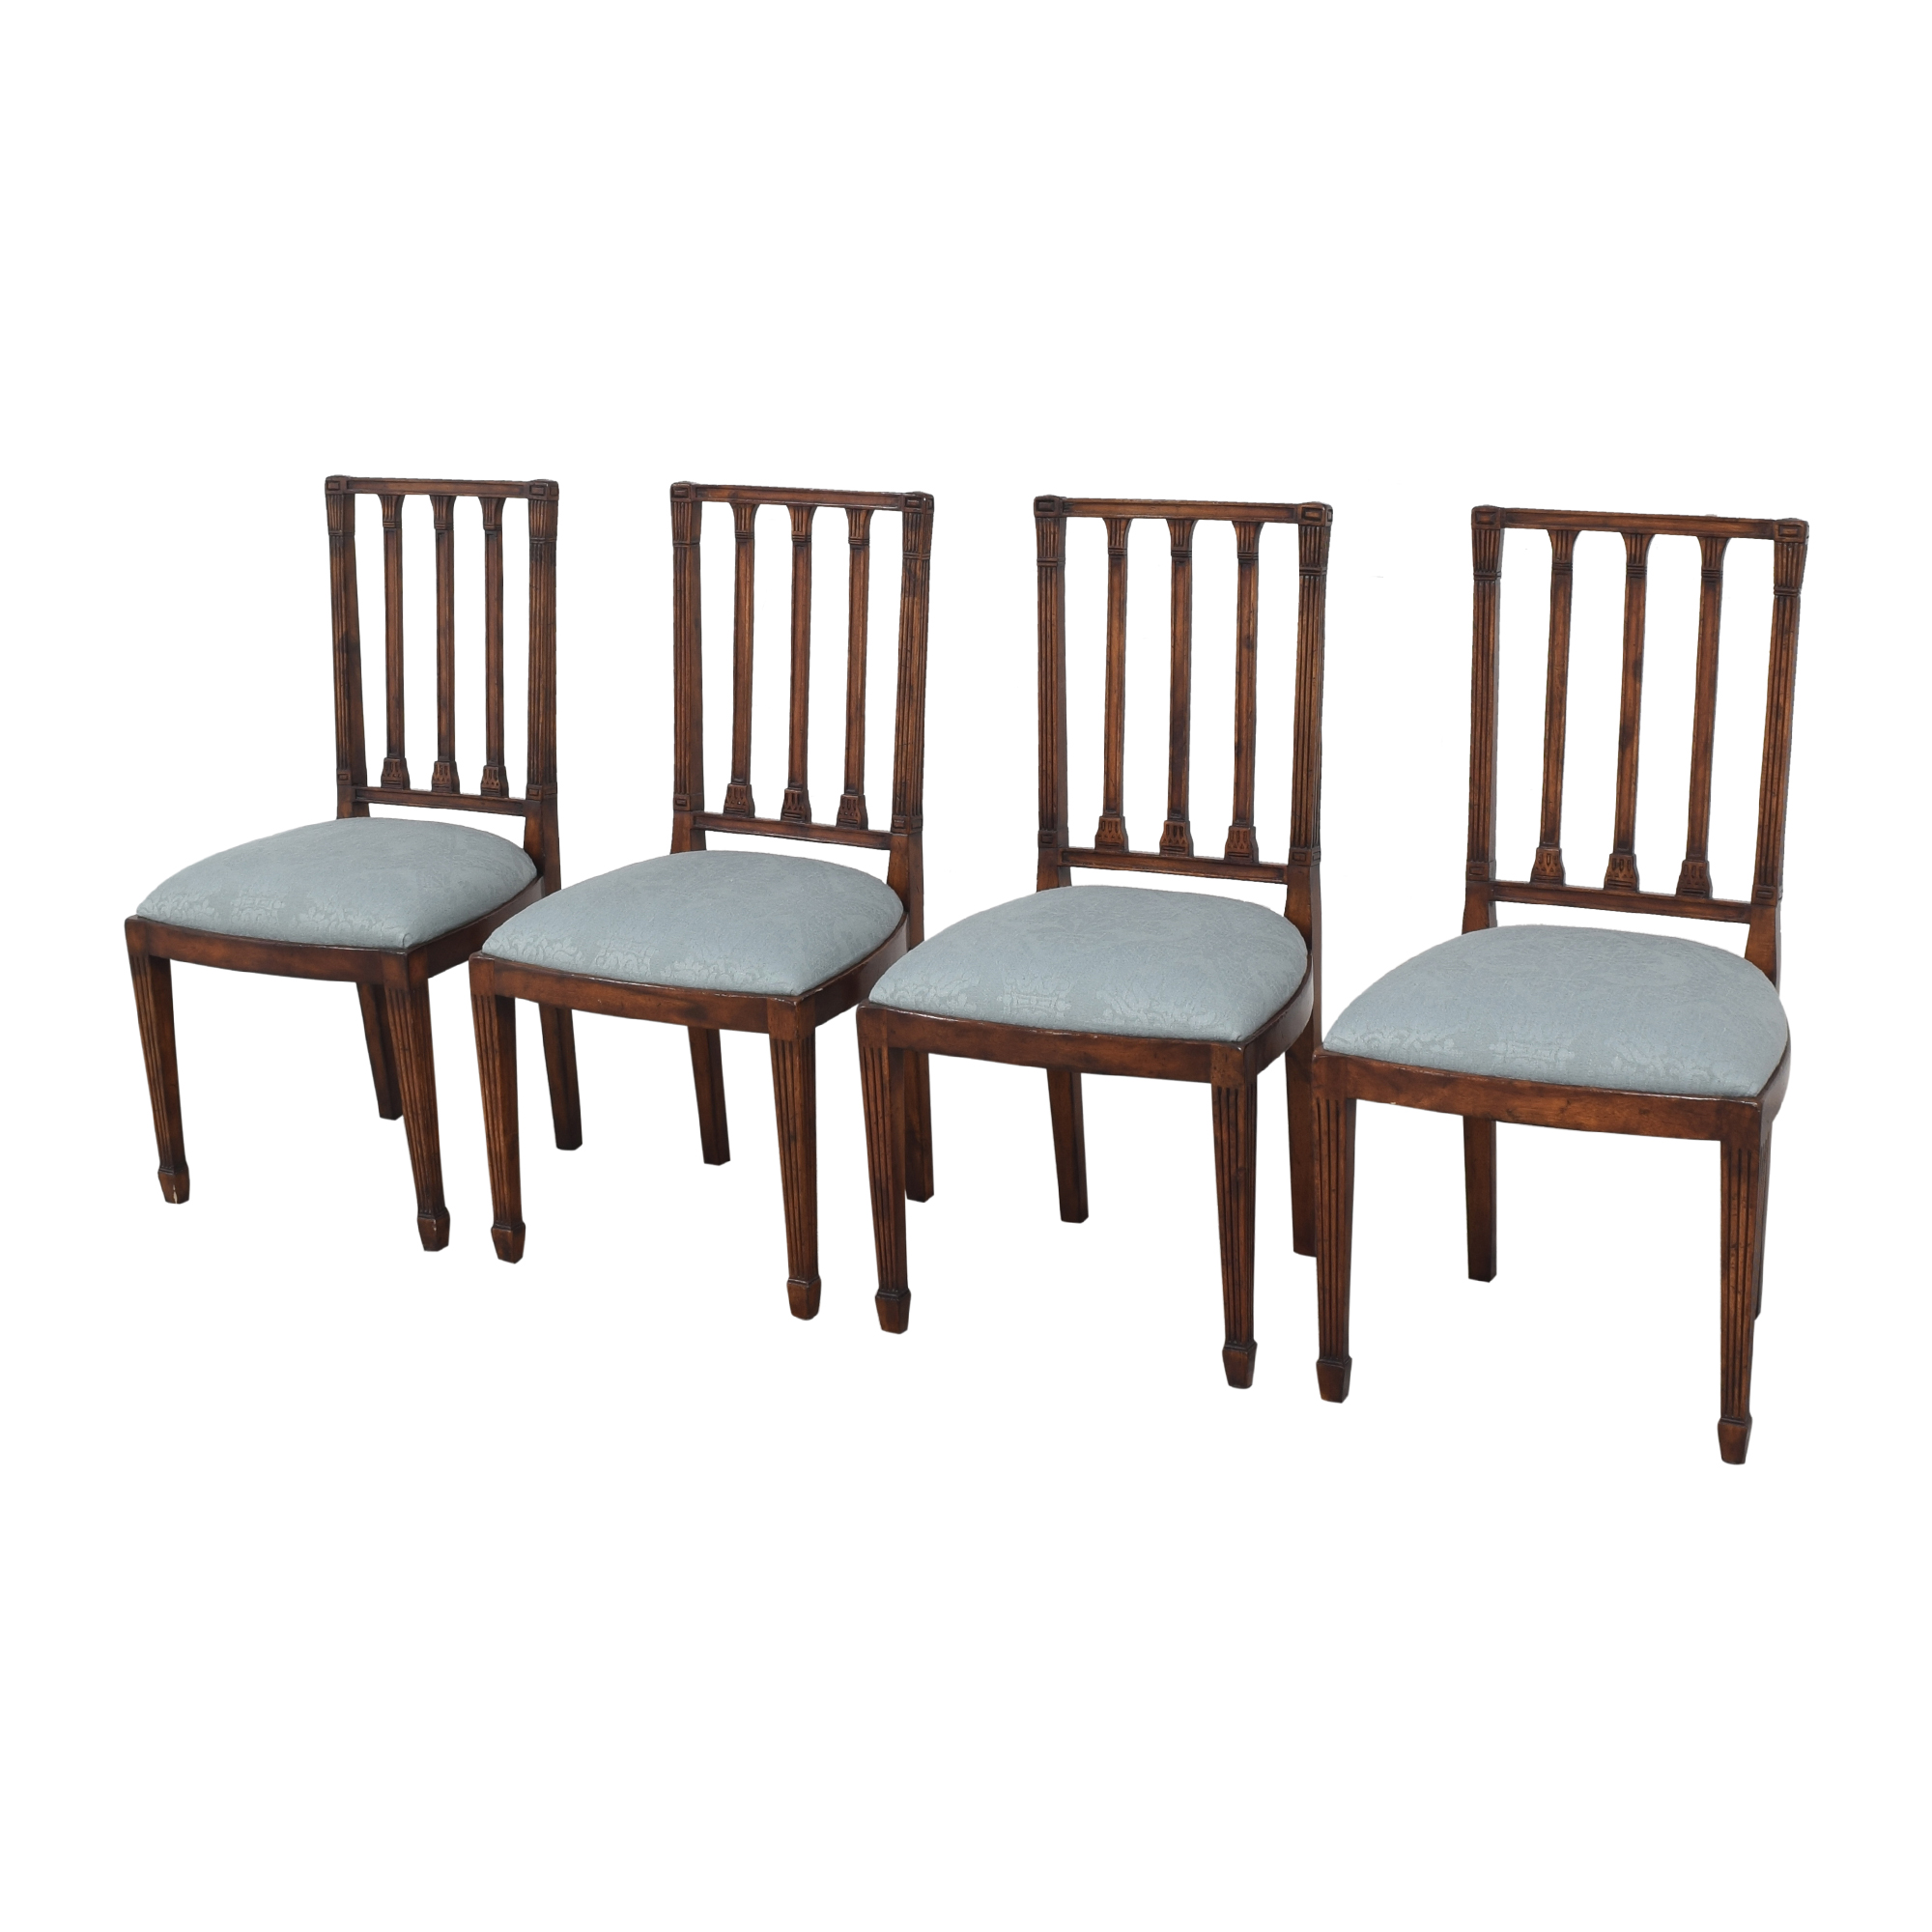 English Country Home English Country Home Upholstered Dining Chairs for sale